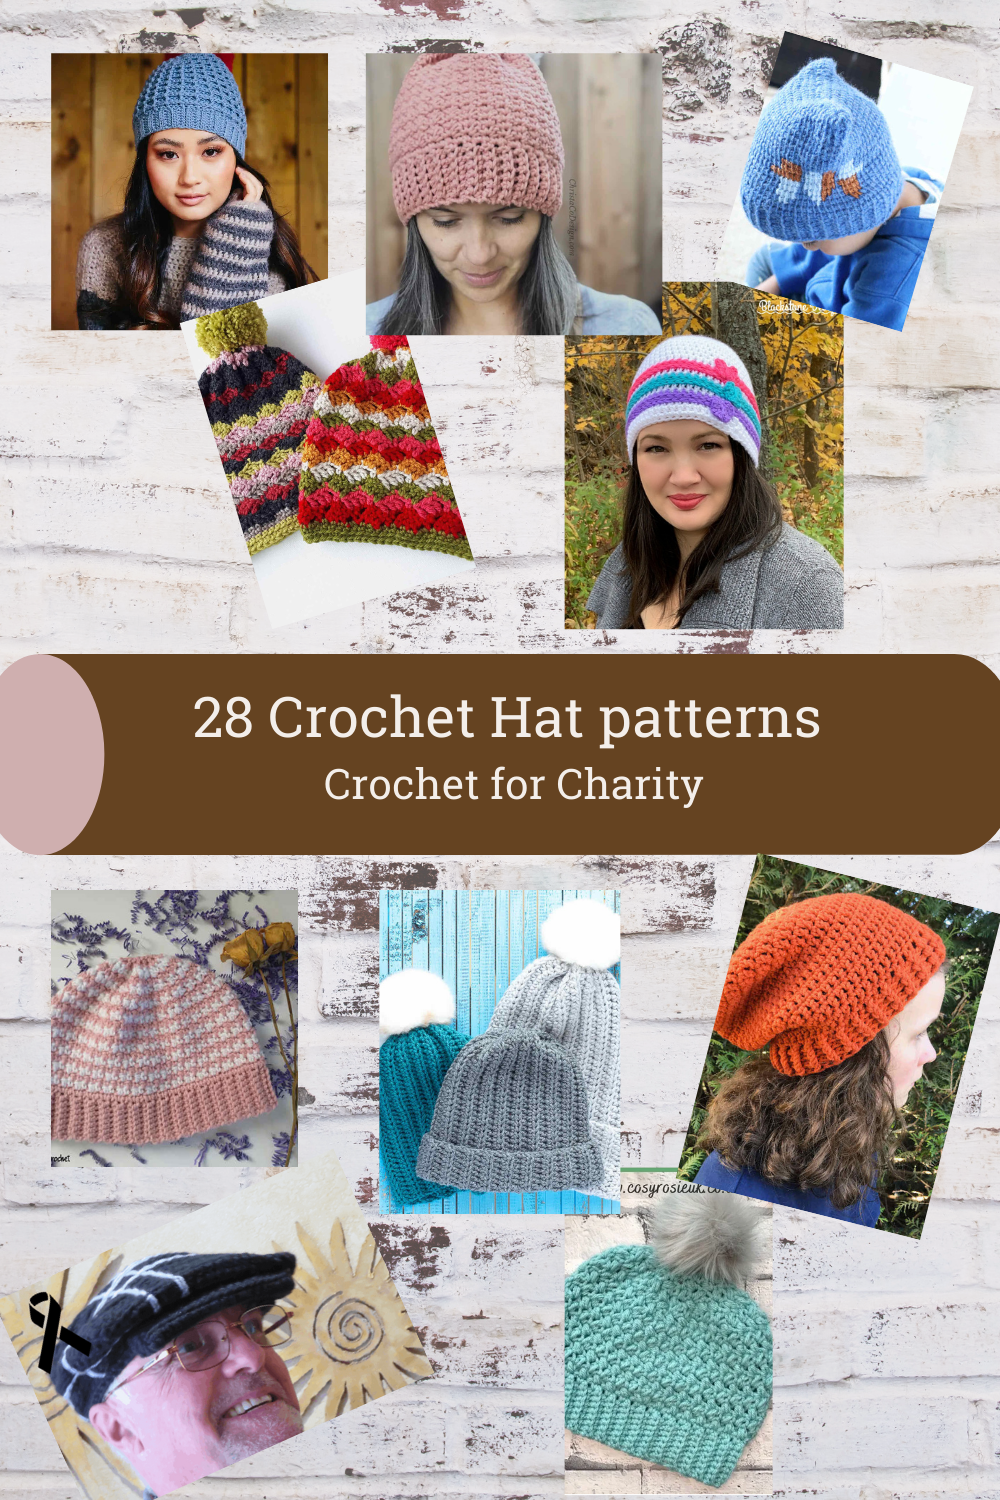 National Make a Hat Day is September 15. Hats are a quick and inexpensive gift, either for someone you love or someone in need. In this roundup post, I've gathered 28 crochet hat patterns perfect for any member of the family. They are also a great option for crochet for charity. via @madamestitch